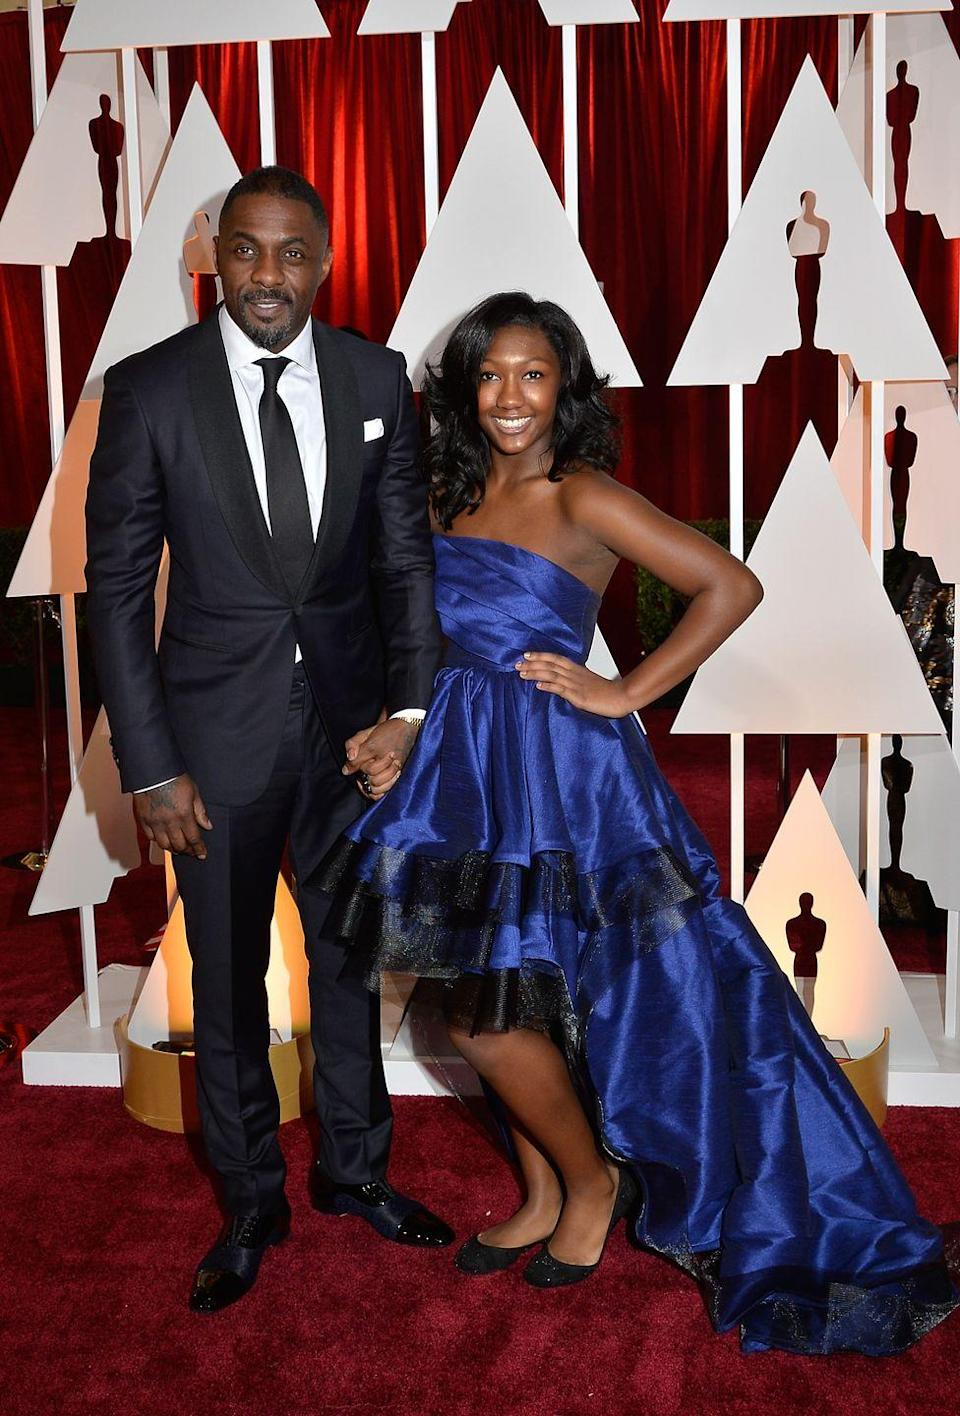 "<p>Elba celebrated his <a href=""http://madamenoire.com/1011042/idris-elba-daughter/"" rel=""nofollow noopener"" target=""_blank"" data-ylk=""slk:daughter Isan's Sweet 16"" class=""link rapid-noclick-resp"">daughter Isan's Sweet 16</a> in 2018 with a big party. His son Winston is 12 years younger than Isan. In 2010 (four years before Winston was born), Elba <a href=""http://www.eonline.com/fr/news/460777/idris-elba-reveals-child-he-thought-he-d-fathered-was-not-his-son-says-it-s-tragic"" rel=""nofollow noopener"" target=""_blank"" data-ylk=""slk:thought he'd fathered another child"" class=""link rapid-noclick-resp"">thought he'd fathered another child</a> with the woman he was seeing. She gave birth to a boy, and Elba thought for sure it was his son—but his friends and family thought otherwise. A paternity test proved they were right. </p><p>""It wasn't immediately obvious—well, it was, because he didn't look like me. But it wasn't immediately obvious what had gone down,"" he told <em><a href=""https://www.gq.com/story/idris-elba-cover-interview-october-2013"" rel=""nofollow noopener"" target=""_blank"" data-ylk=""slk:GQ"" class=""link rapid-noclick-resp"">GQ</a></em> in 2013. ""To be given that and then have it taken away so harshly was like taking a full-on punch in the face: POW.""</p>"